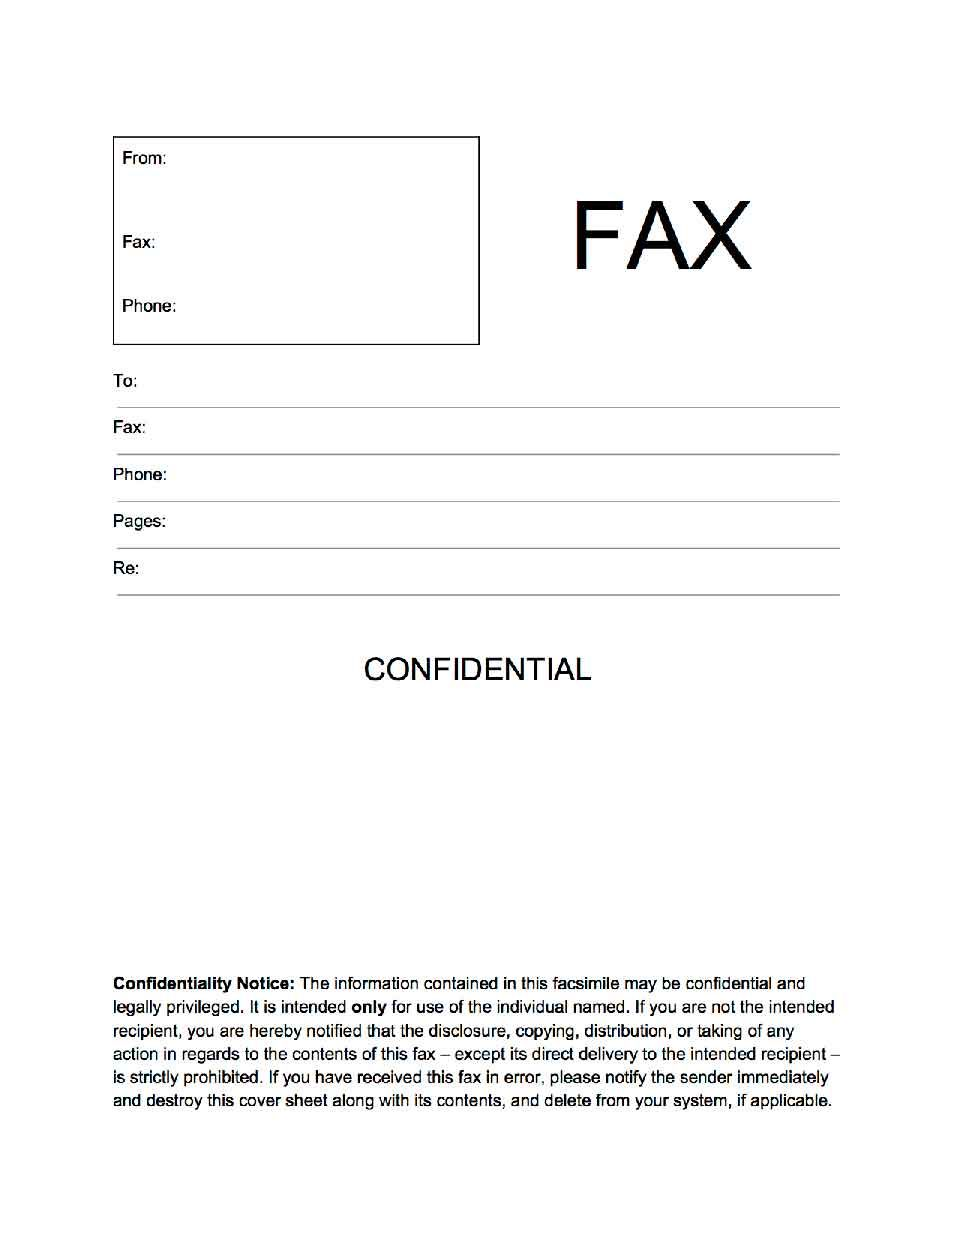 best ideas about popular fax cover sheets 8 best ideas about popular fax cover sheets templates and medical